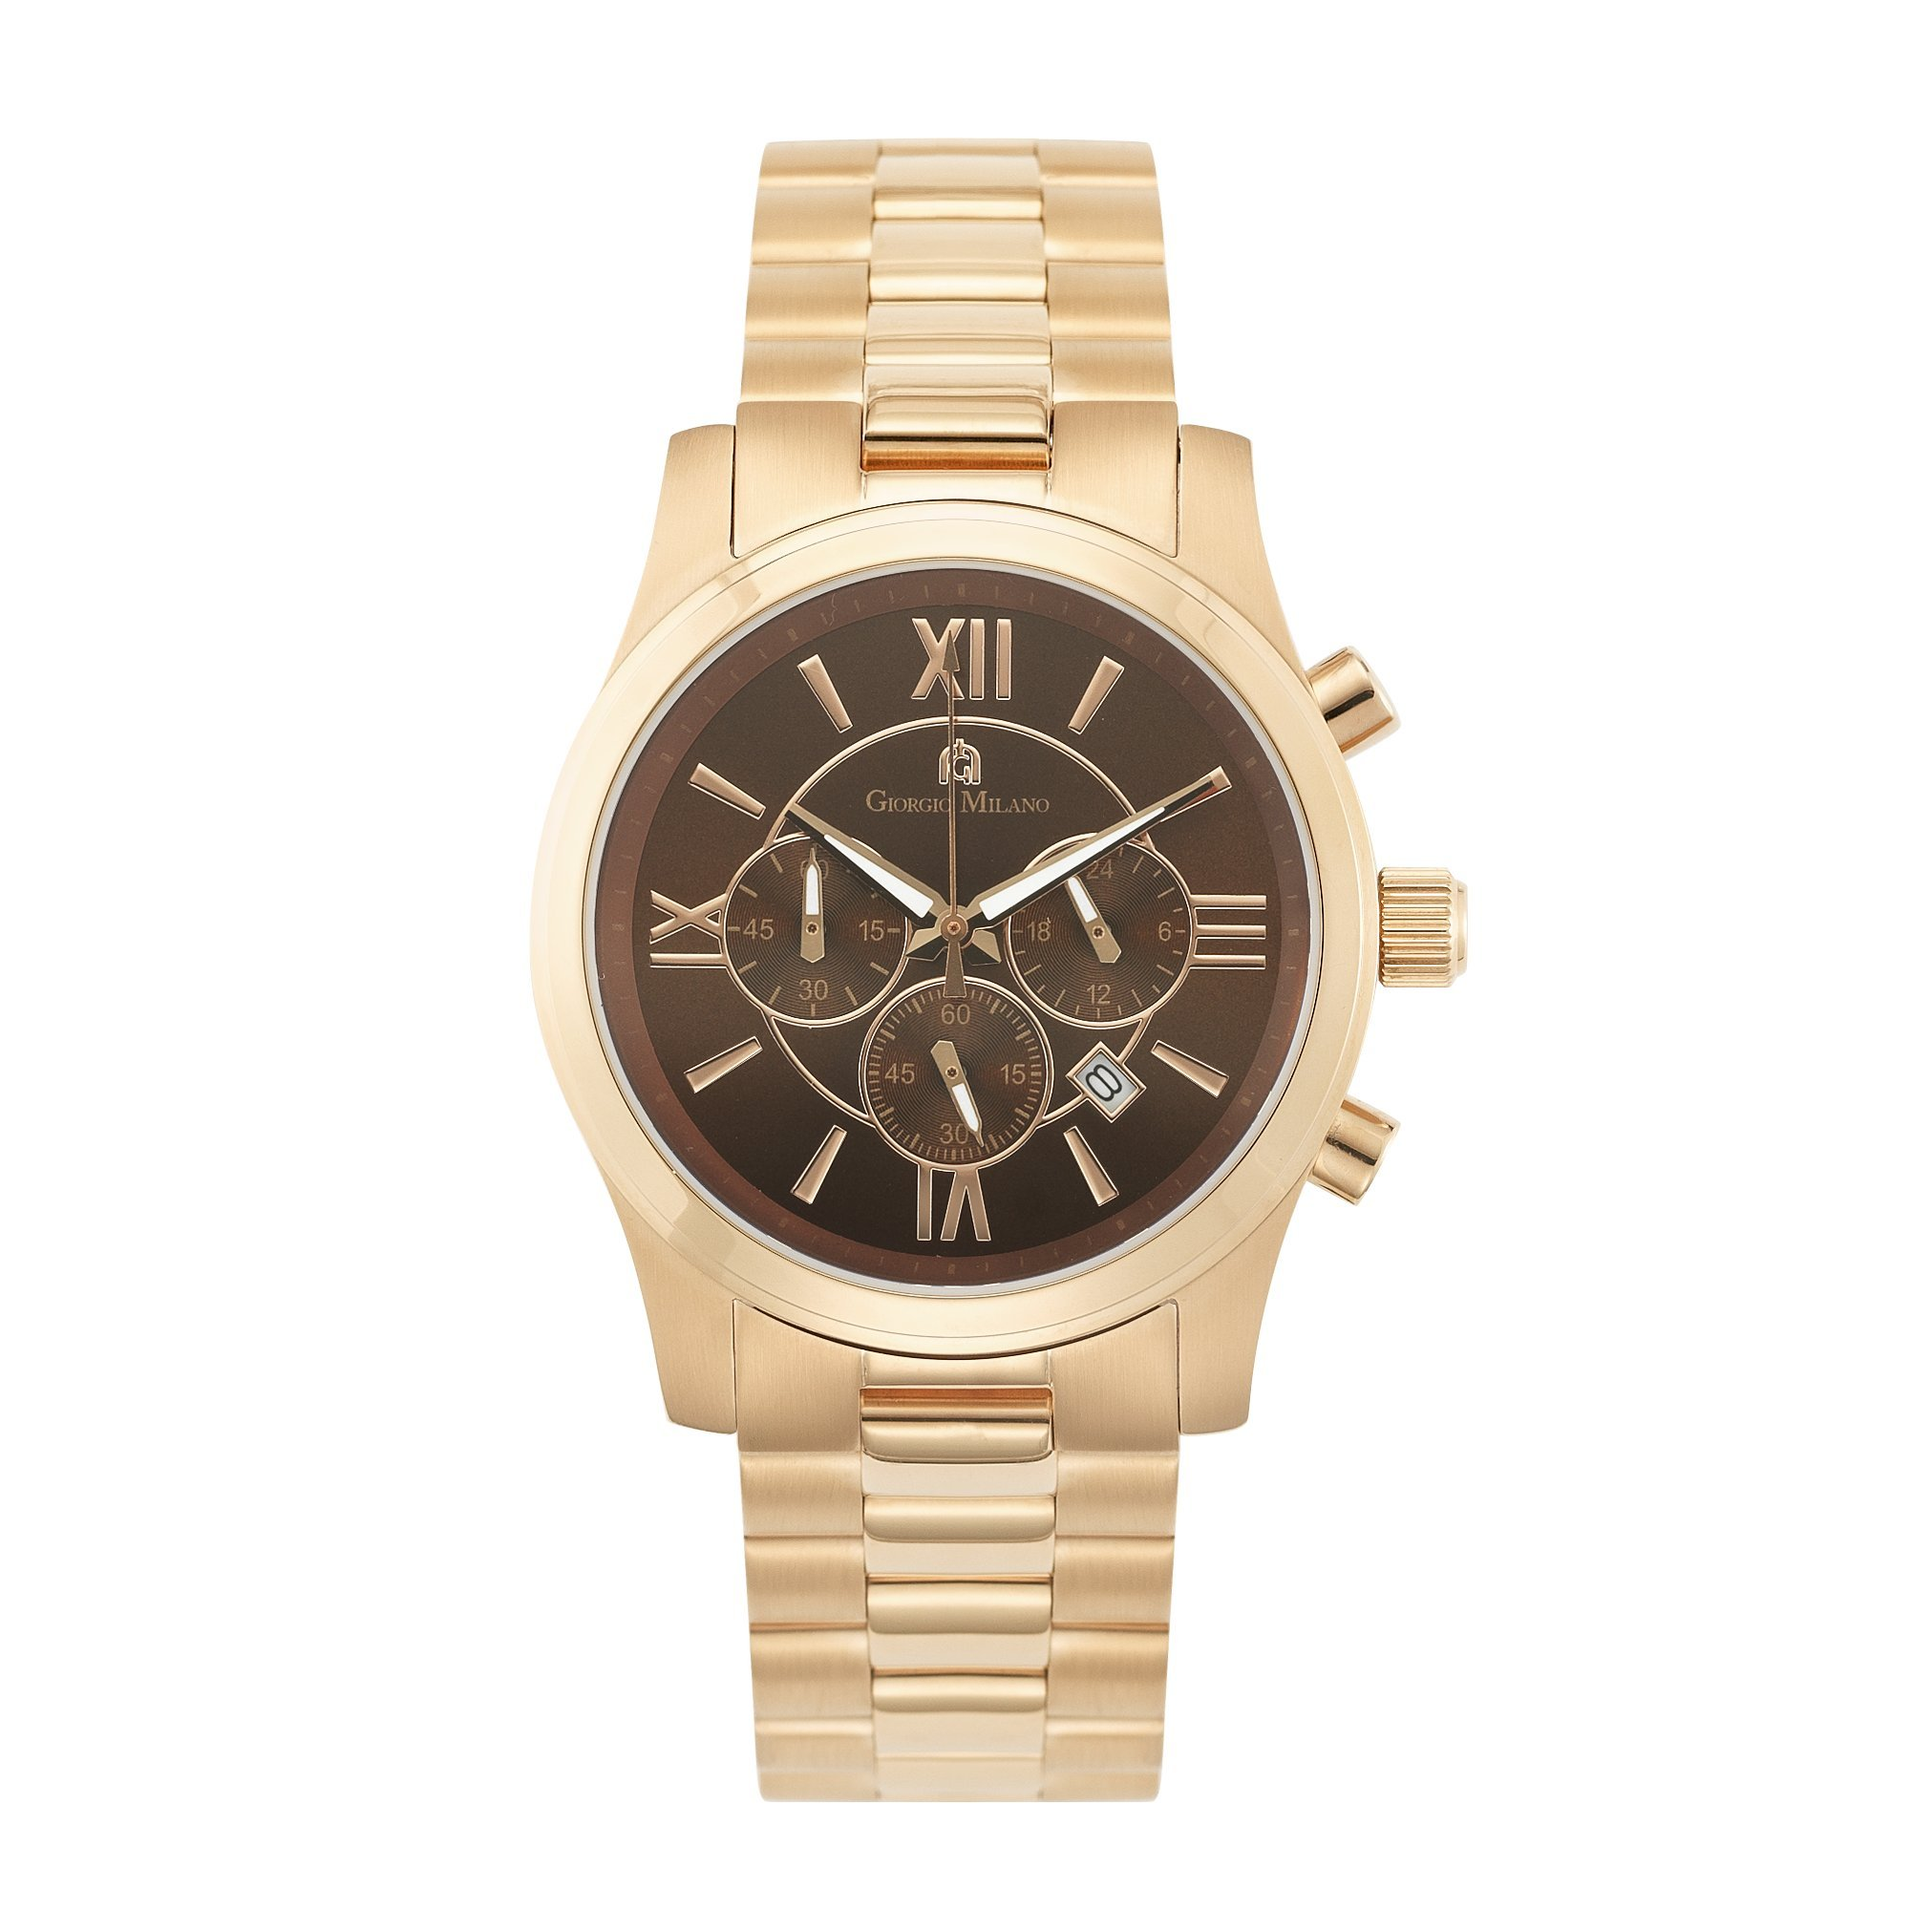 Giorgio Milano 977RG06 ''Orabella'' Rose Gold Tone Stainless Steel with Chronograph and Date